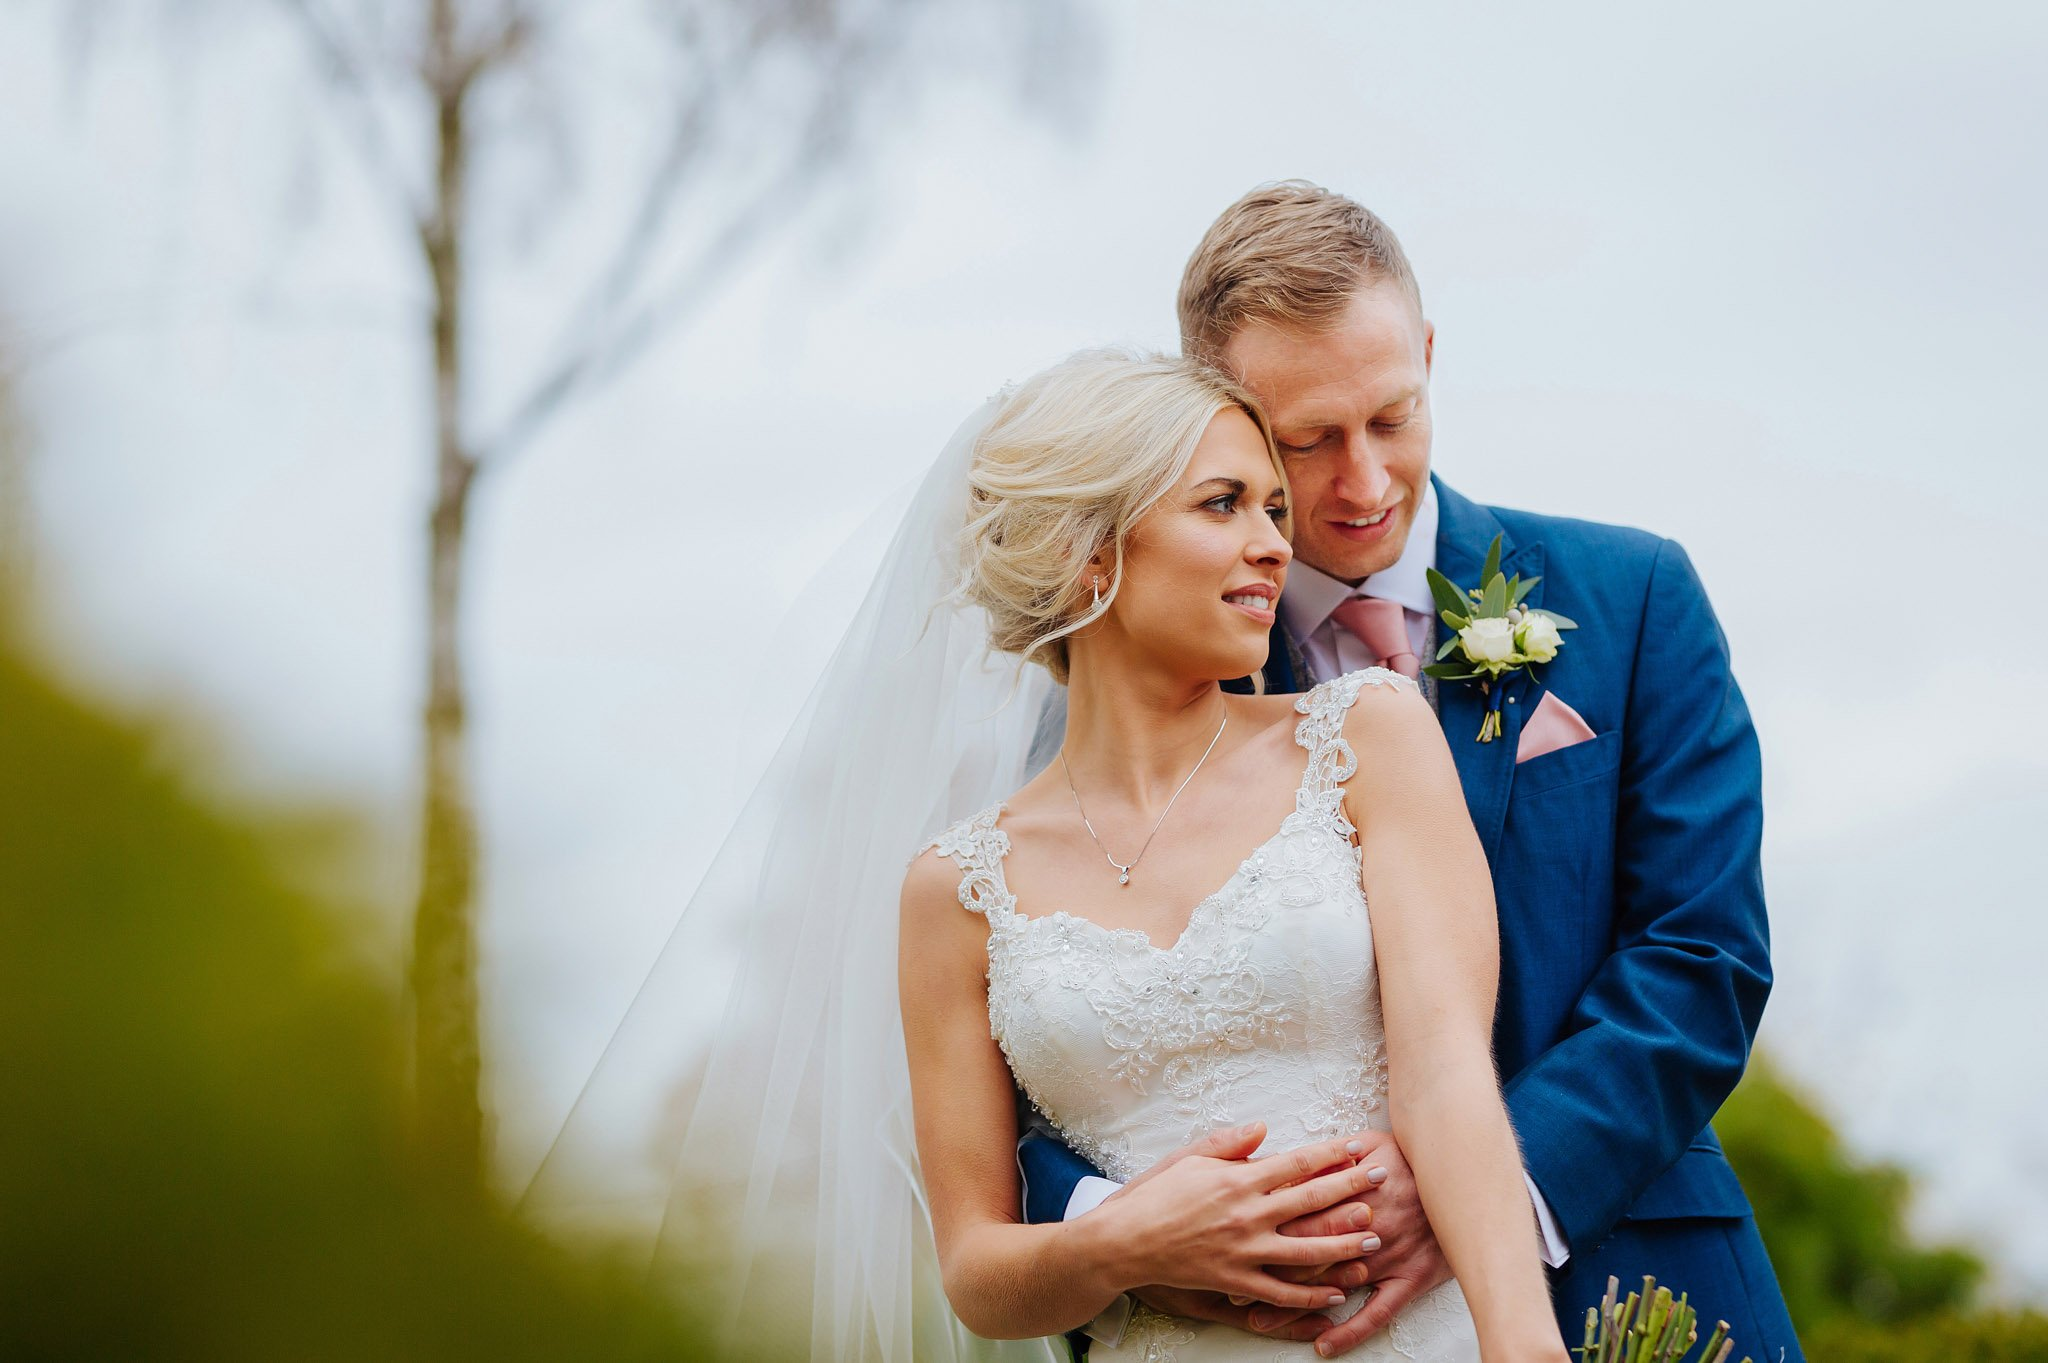 Lemore Manor wedding, Herefordshire - West Midlands | Sadie + Ken 43